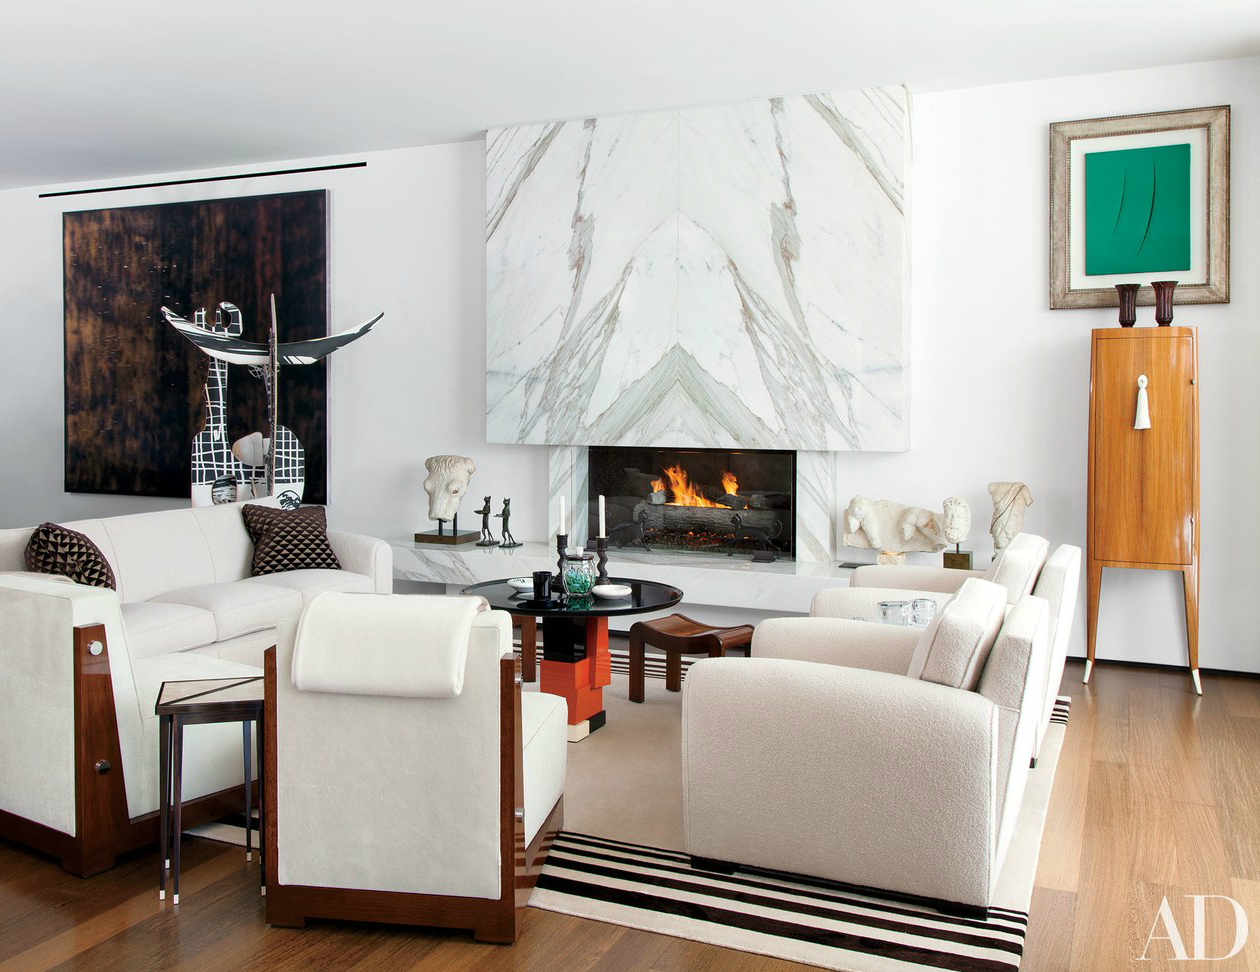 The-Sophisticated-Interior-Designers-By-AD100-List-Waldo-Designs-Modern-Living-Room.jpg